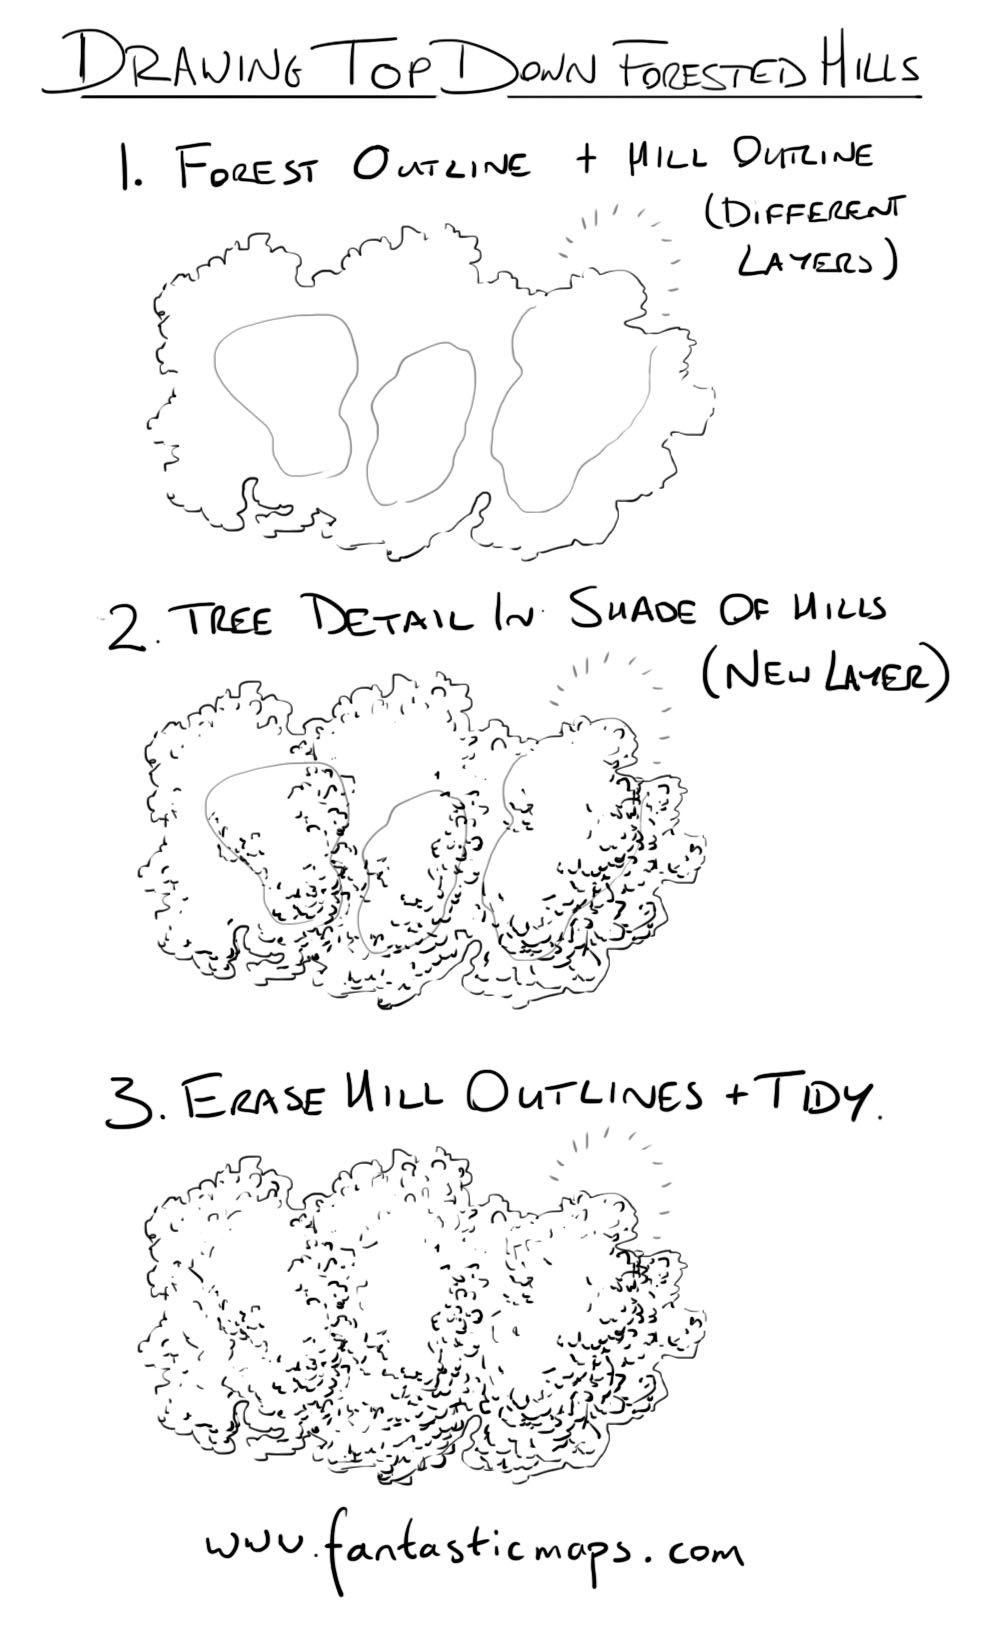 How To Draw Forested Hills On A Top Down Map Art Tutorials